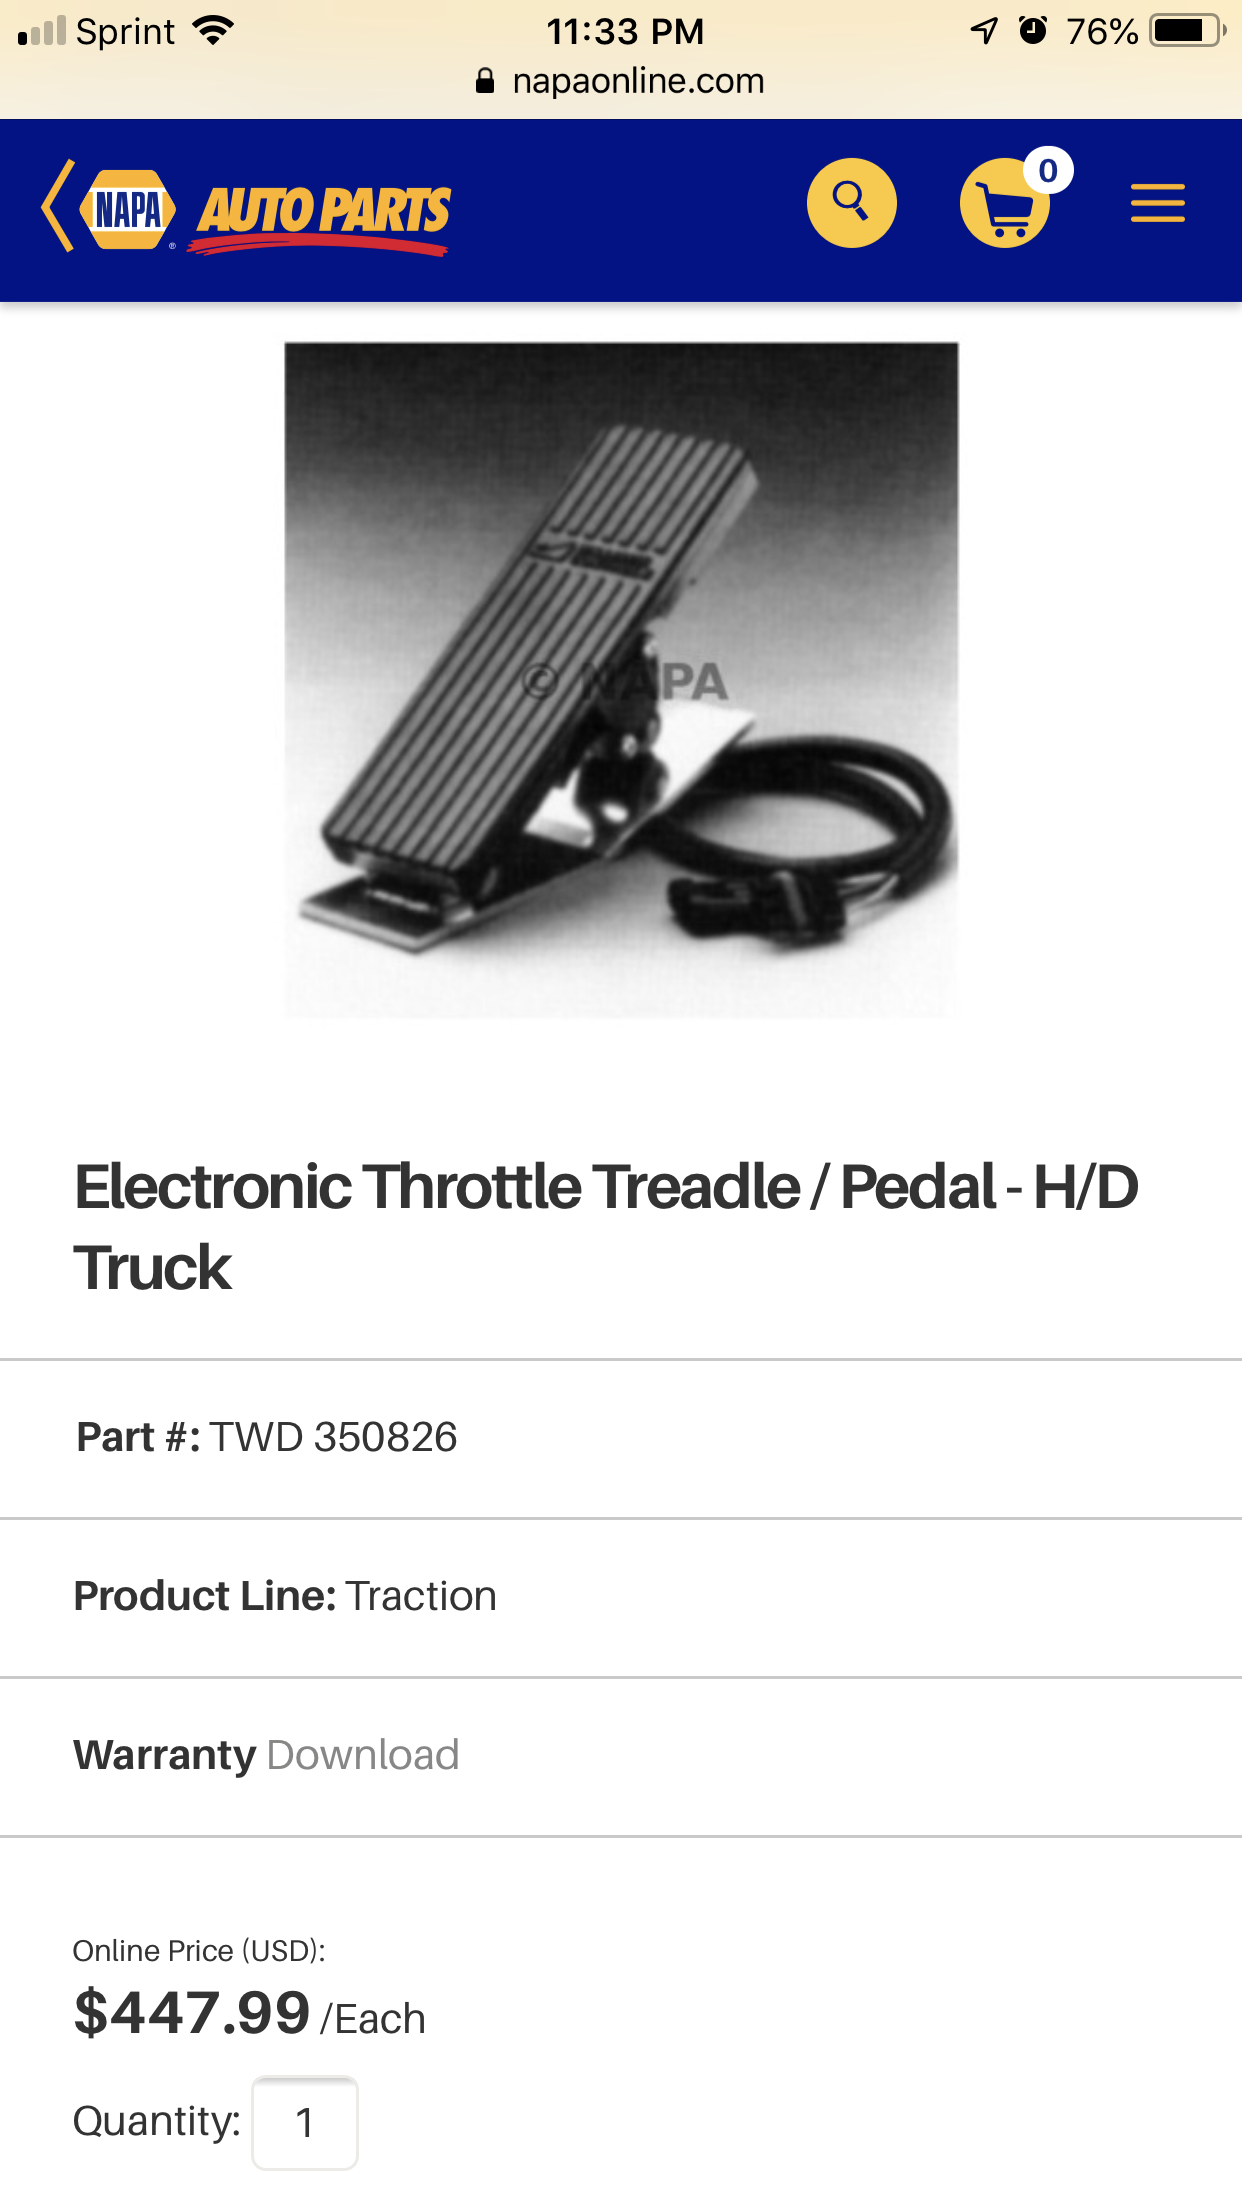 Need a new foot throttle pedal for 93 KW N14 replaced the